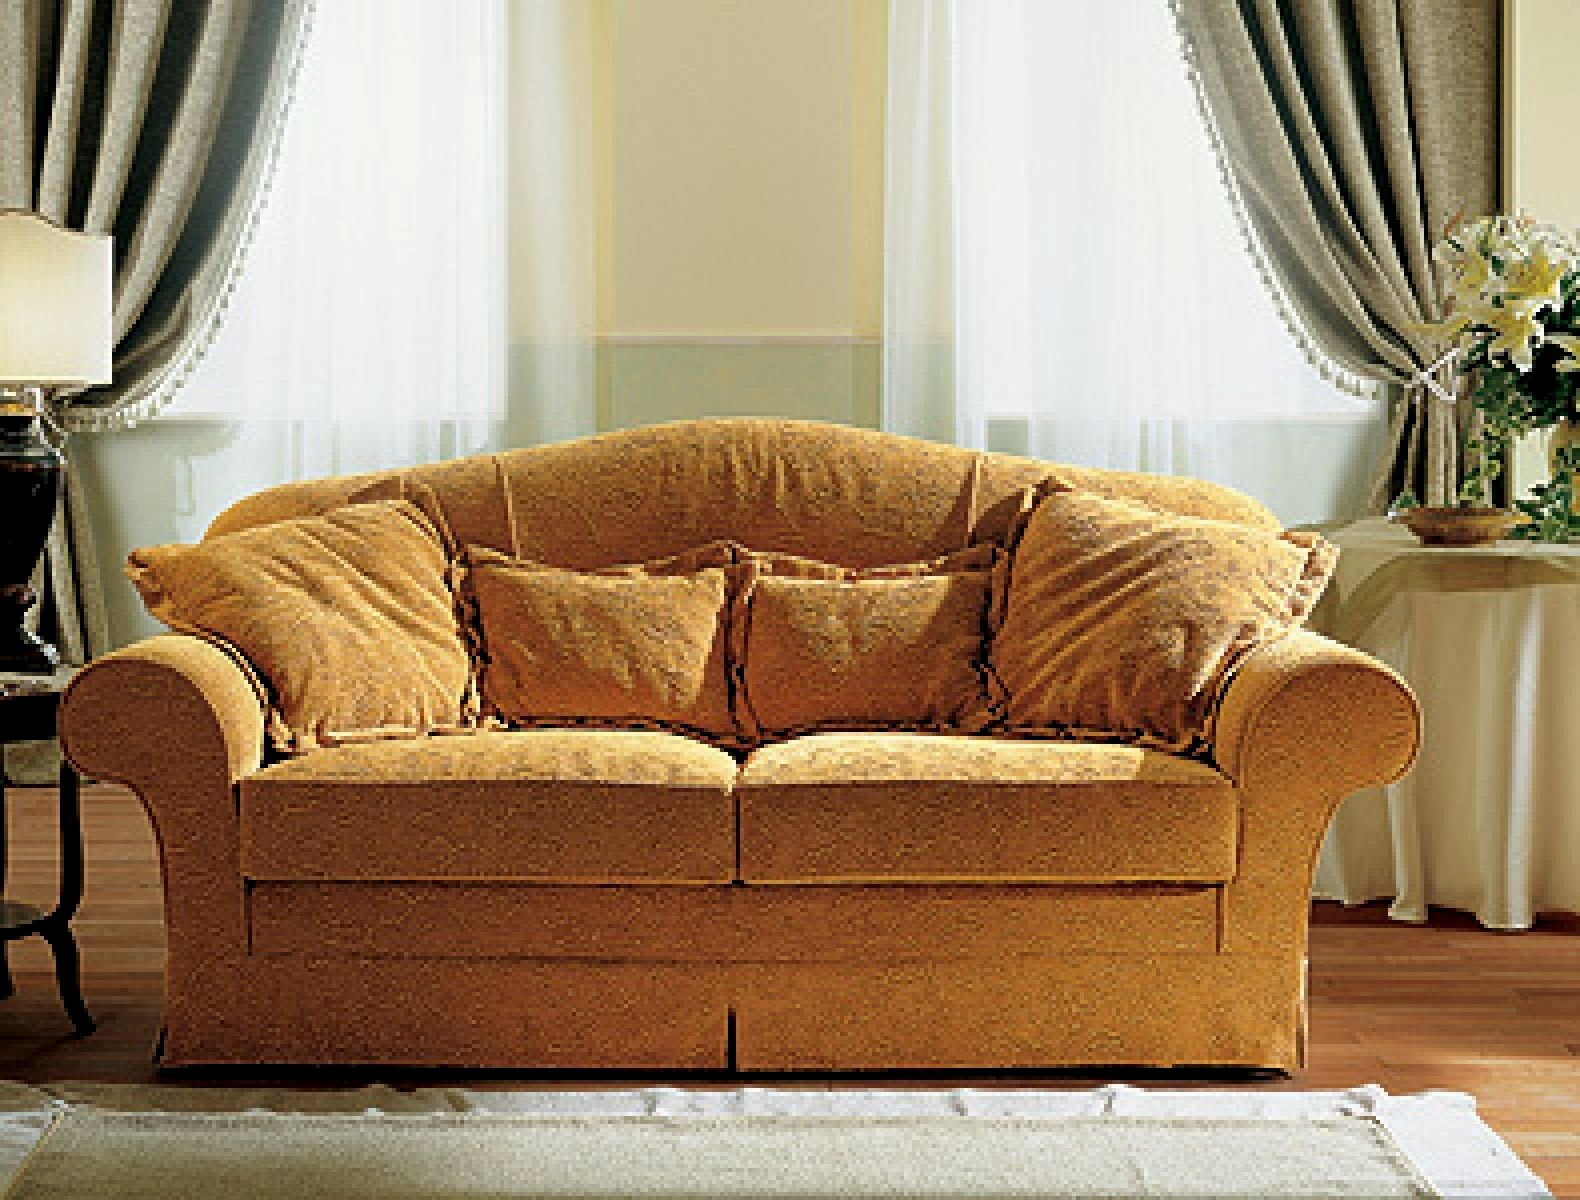 fancy best sleeper sofas pattern-Amazing Best Sleeper sofas Image